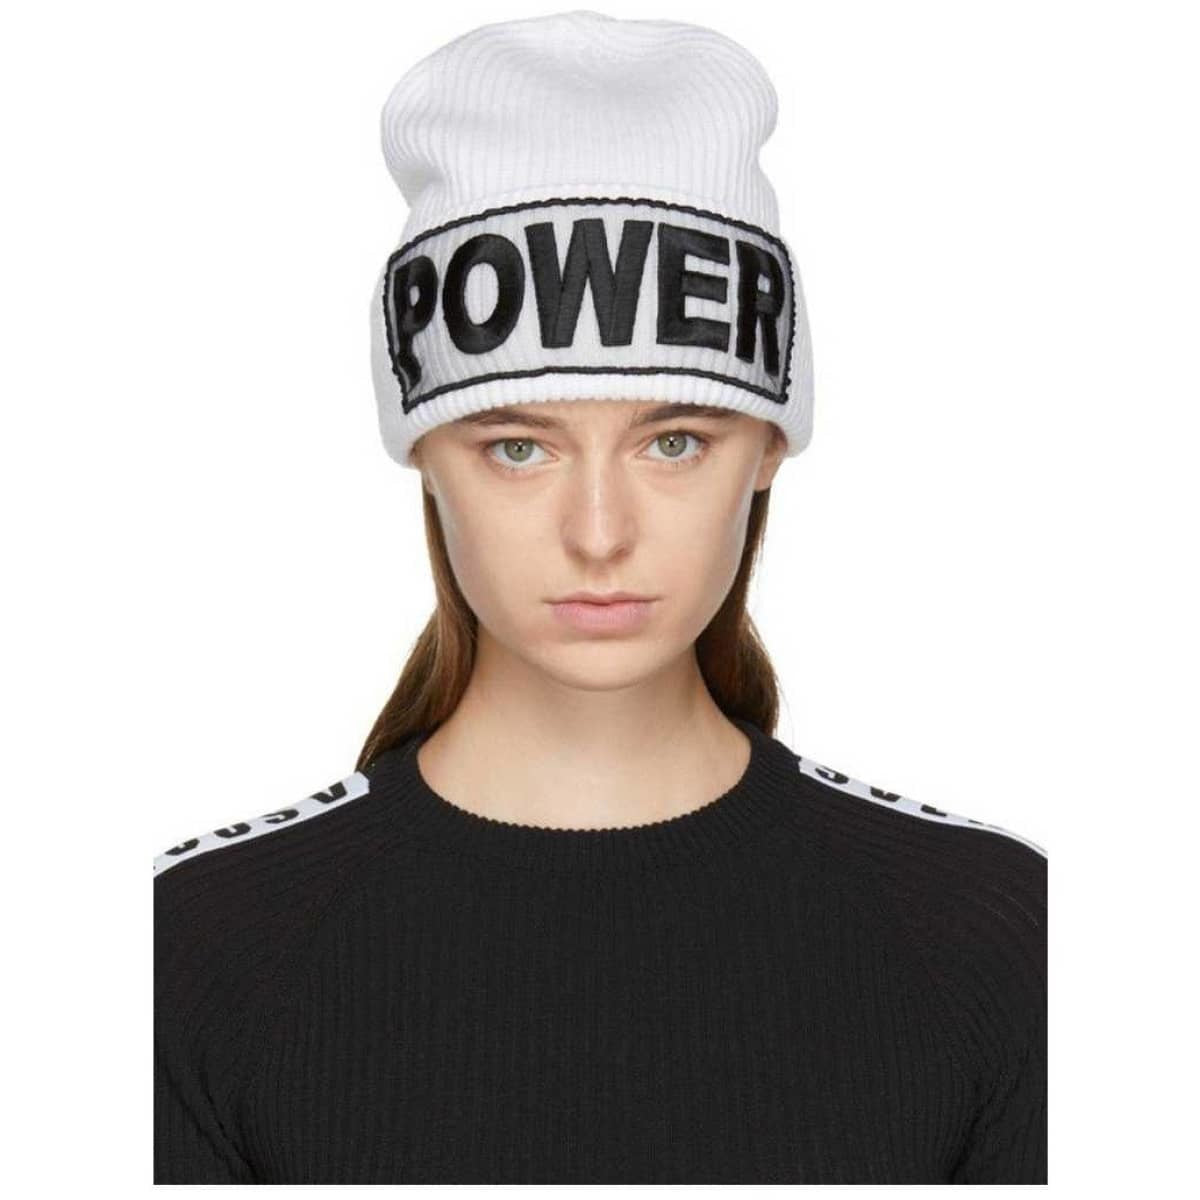 White 'Power' Versace Beanie Hat - Fitfineandfabulous.com